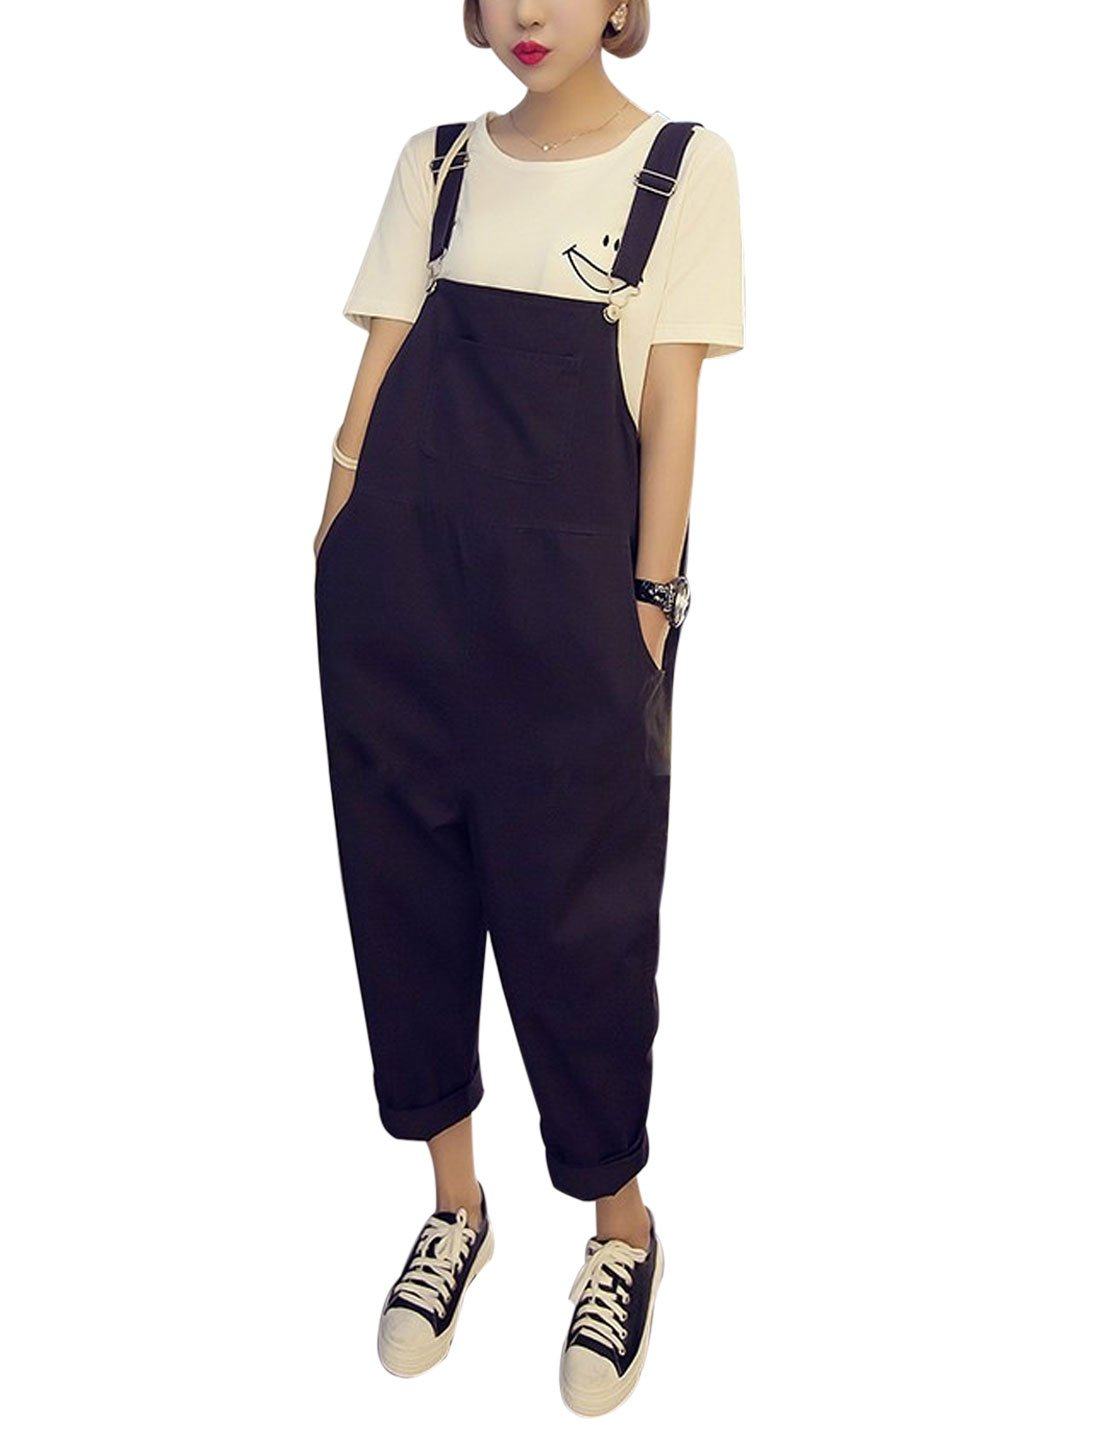 Yeokou Women's Loose Baggy Cotton Wide Leg Jumpsuit Rompers Overalls Harem Pants (Medium, Black)